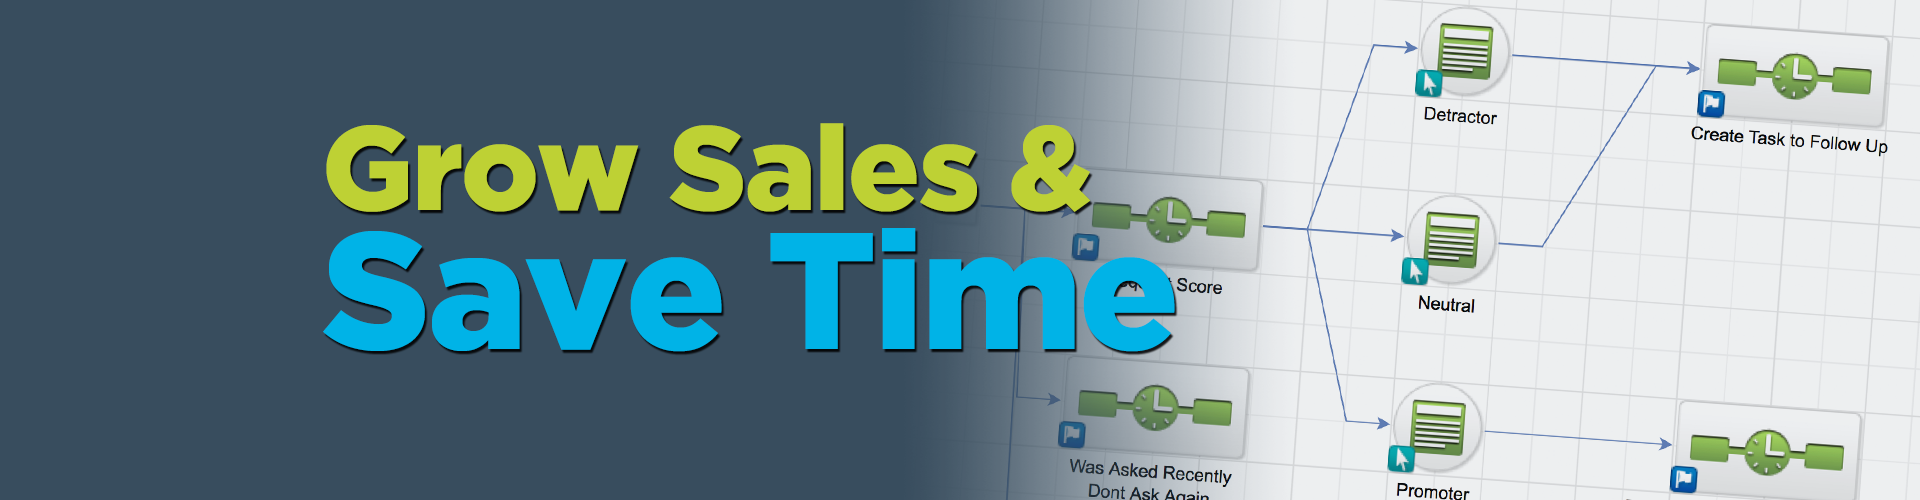 Grow Sales & Save Time